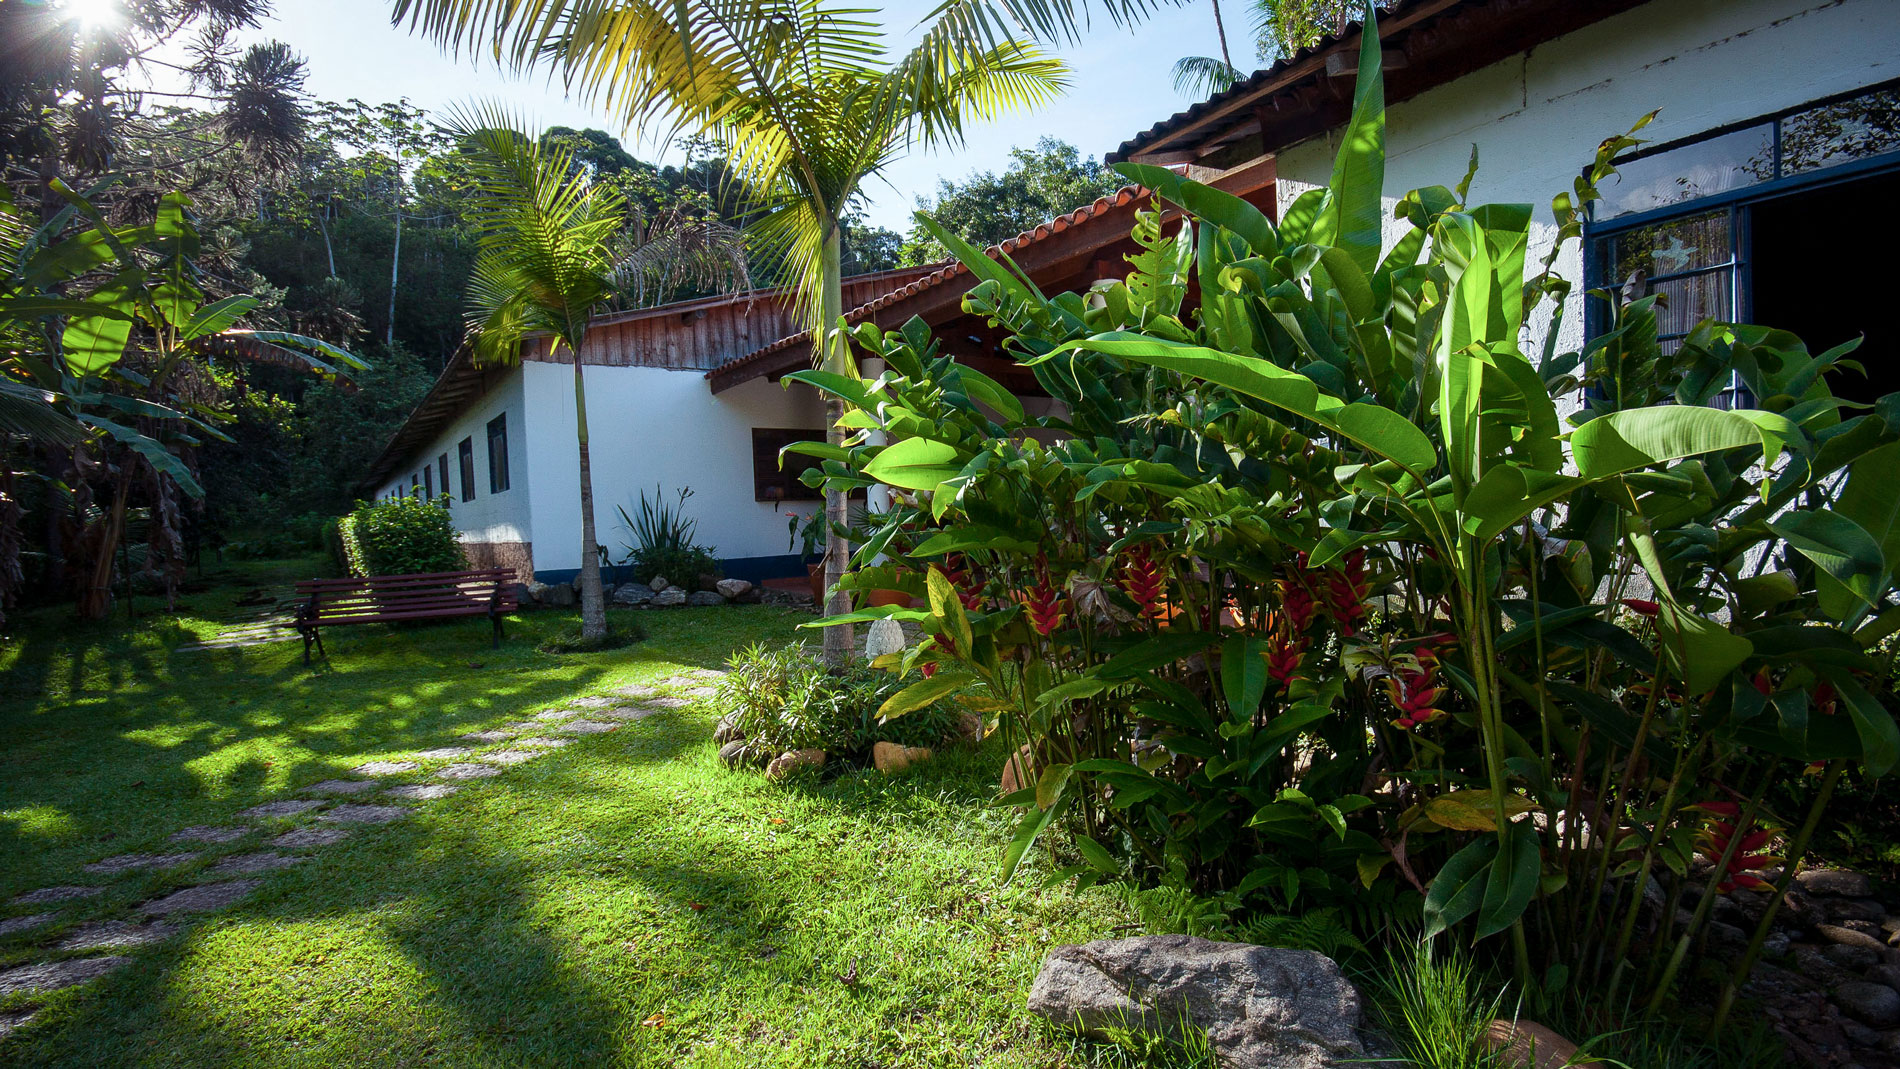 Salve Floresta eco-lodge